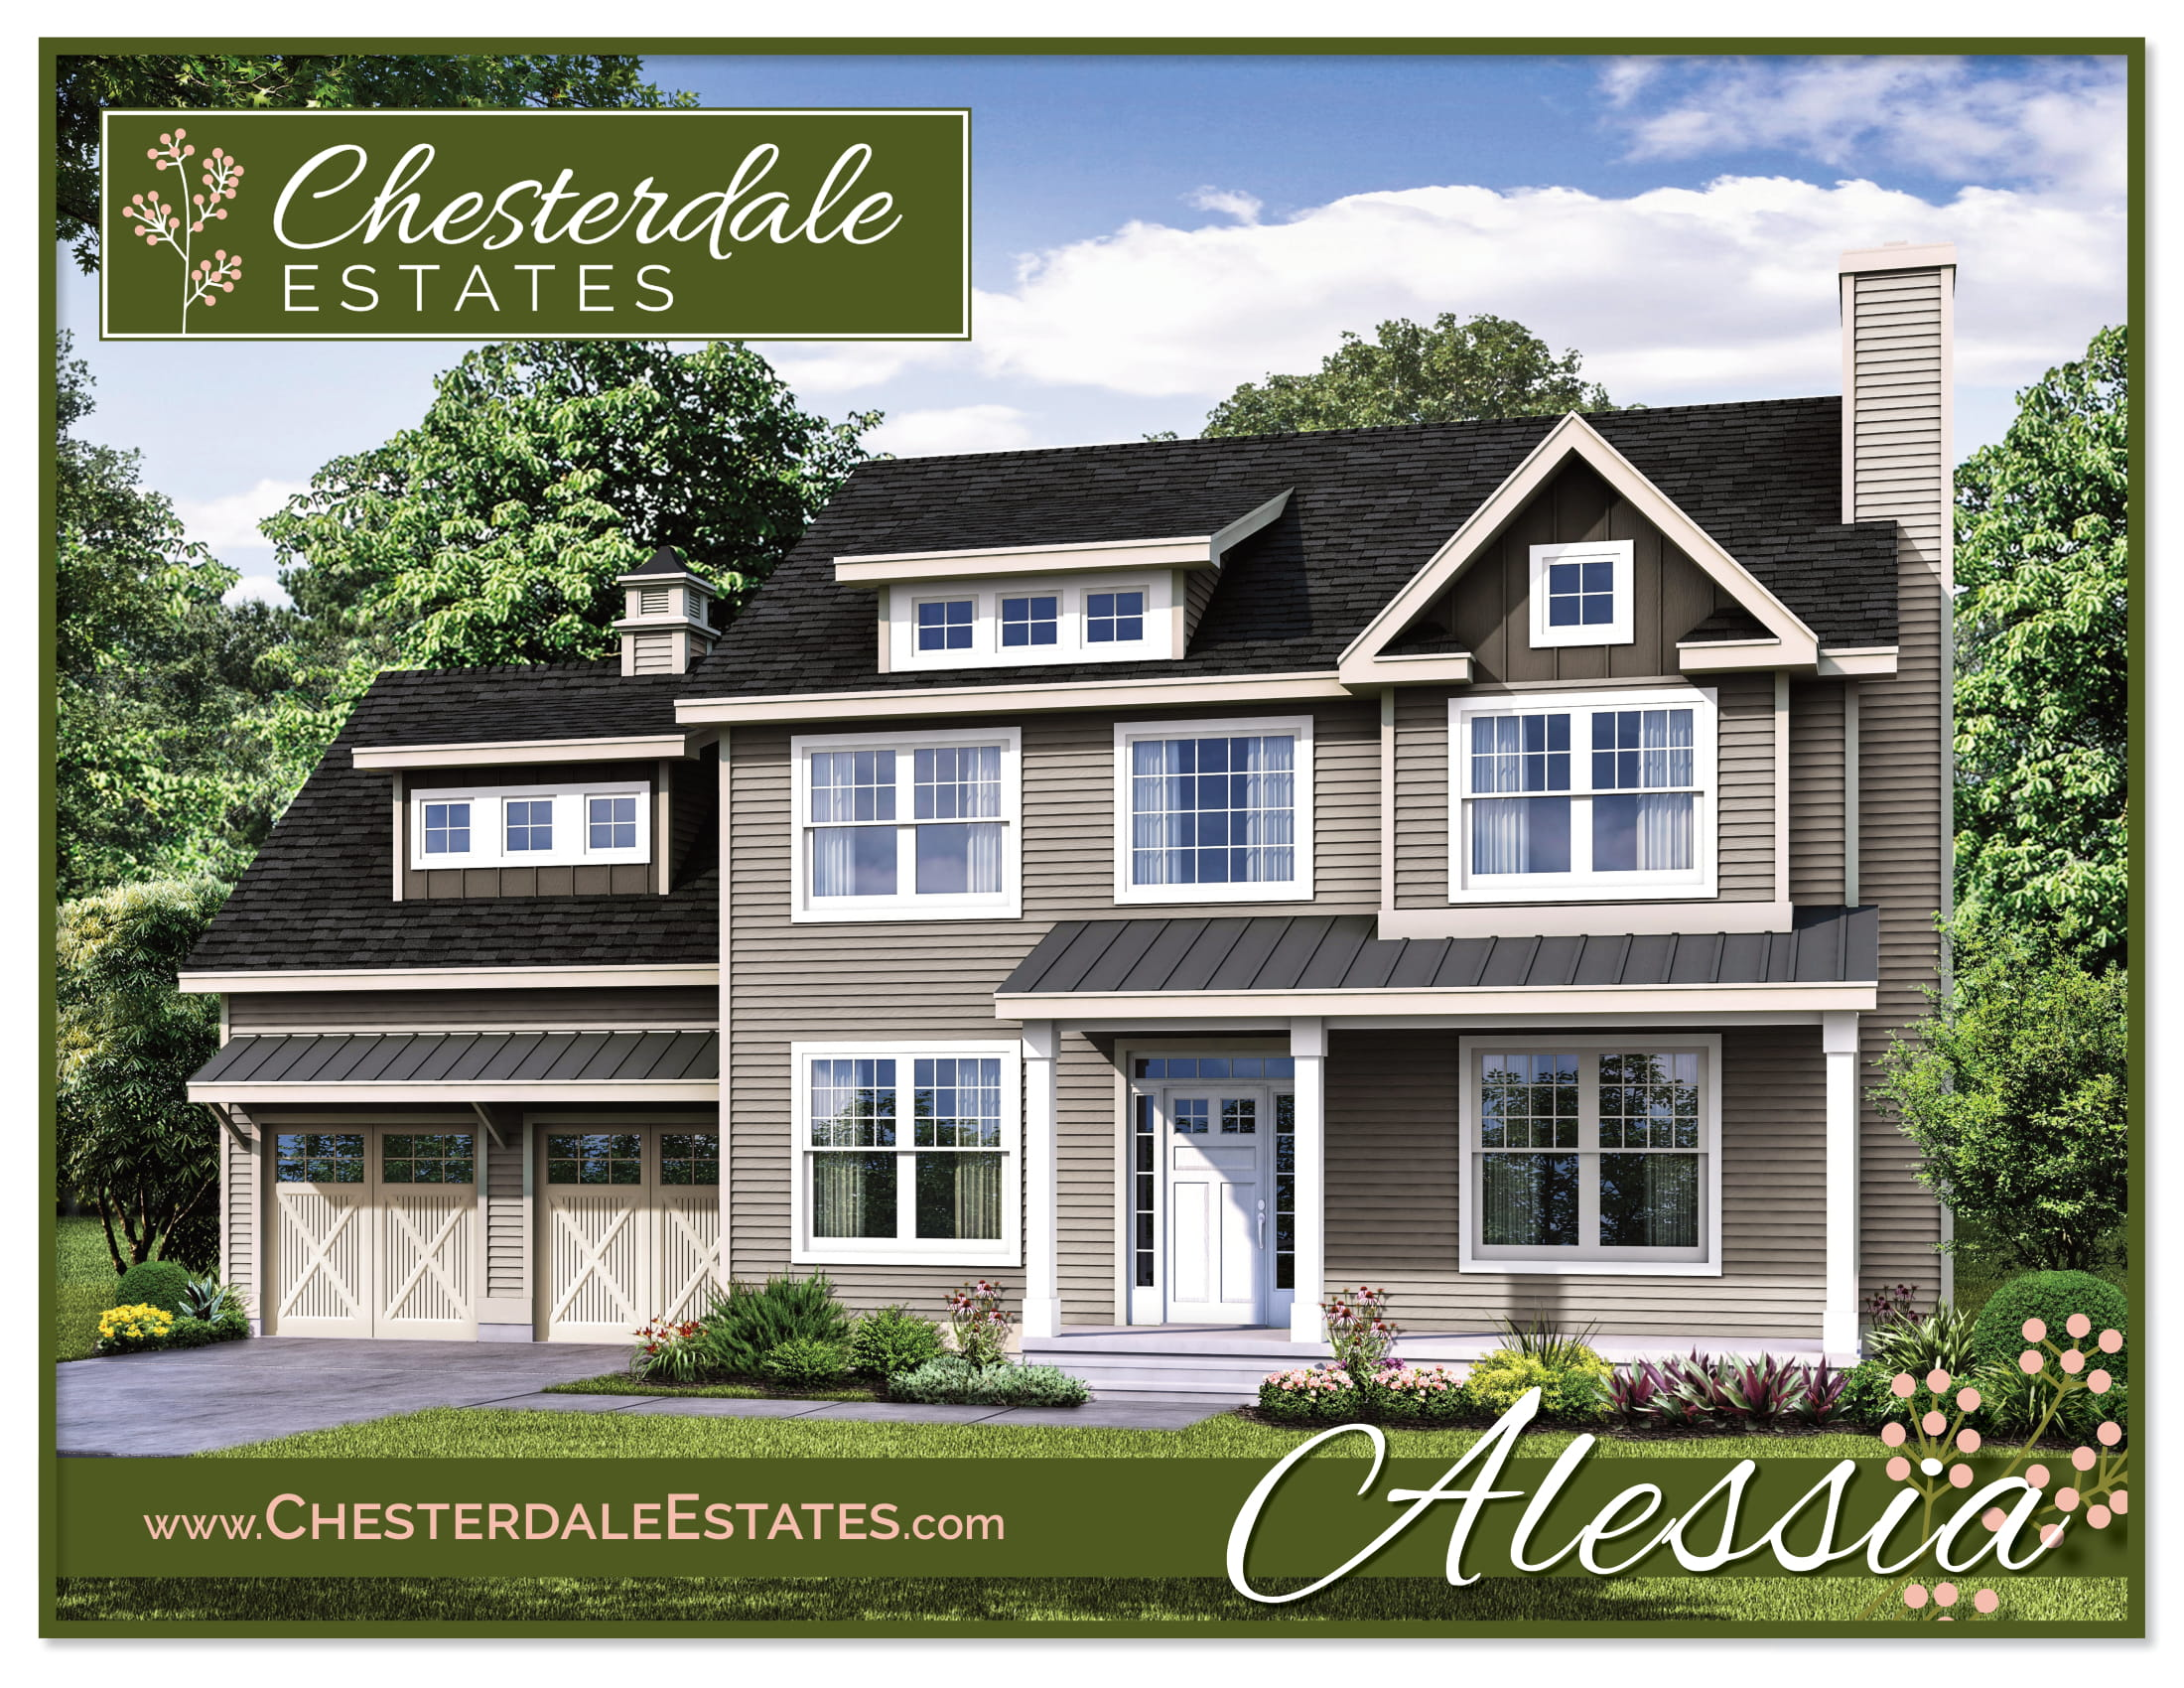 Christopher Ogden Middletown Ny Real Estate Thealessia Chesterdale 1